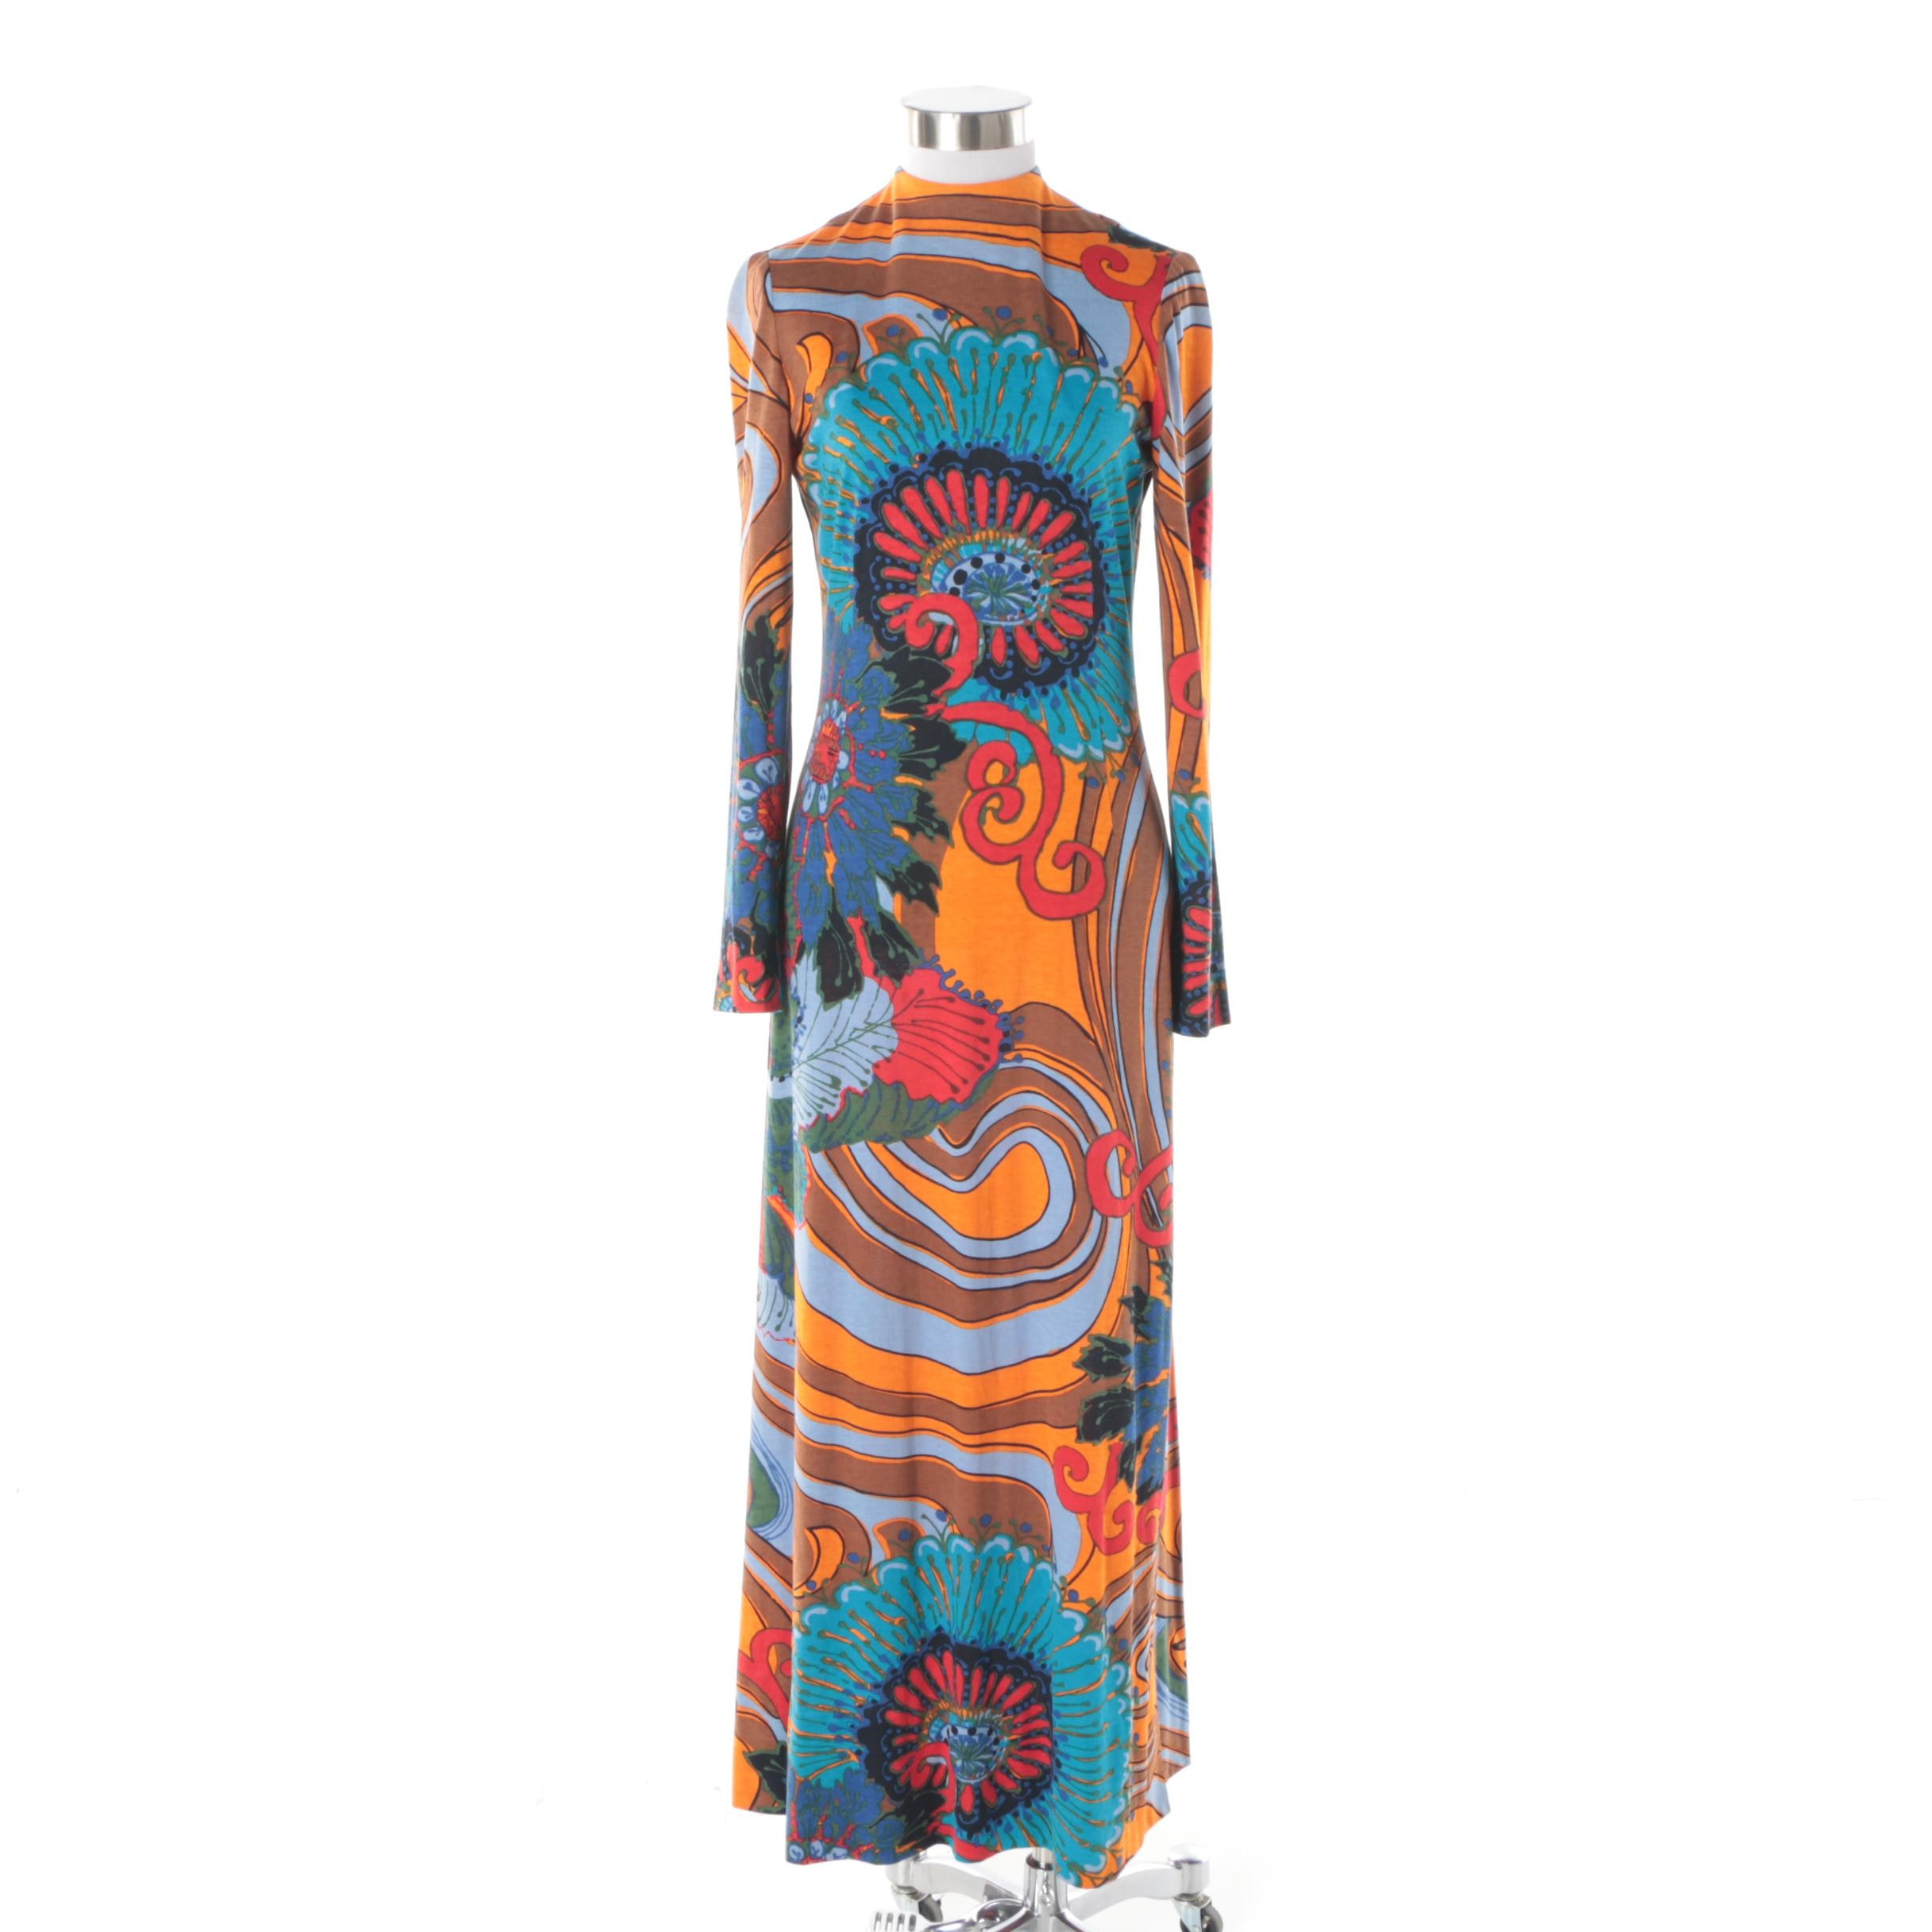 Circa 1960s Vintage Multicolored Psychedelic Floral Print Maxi Dress